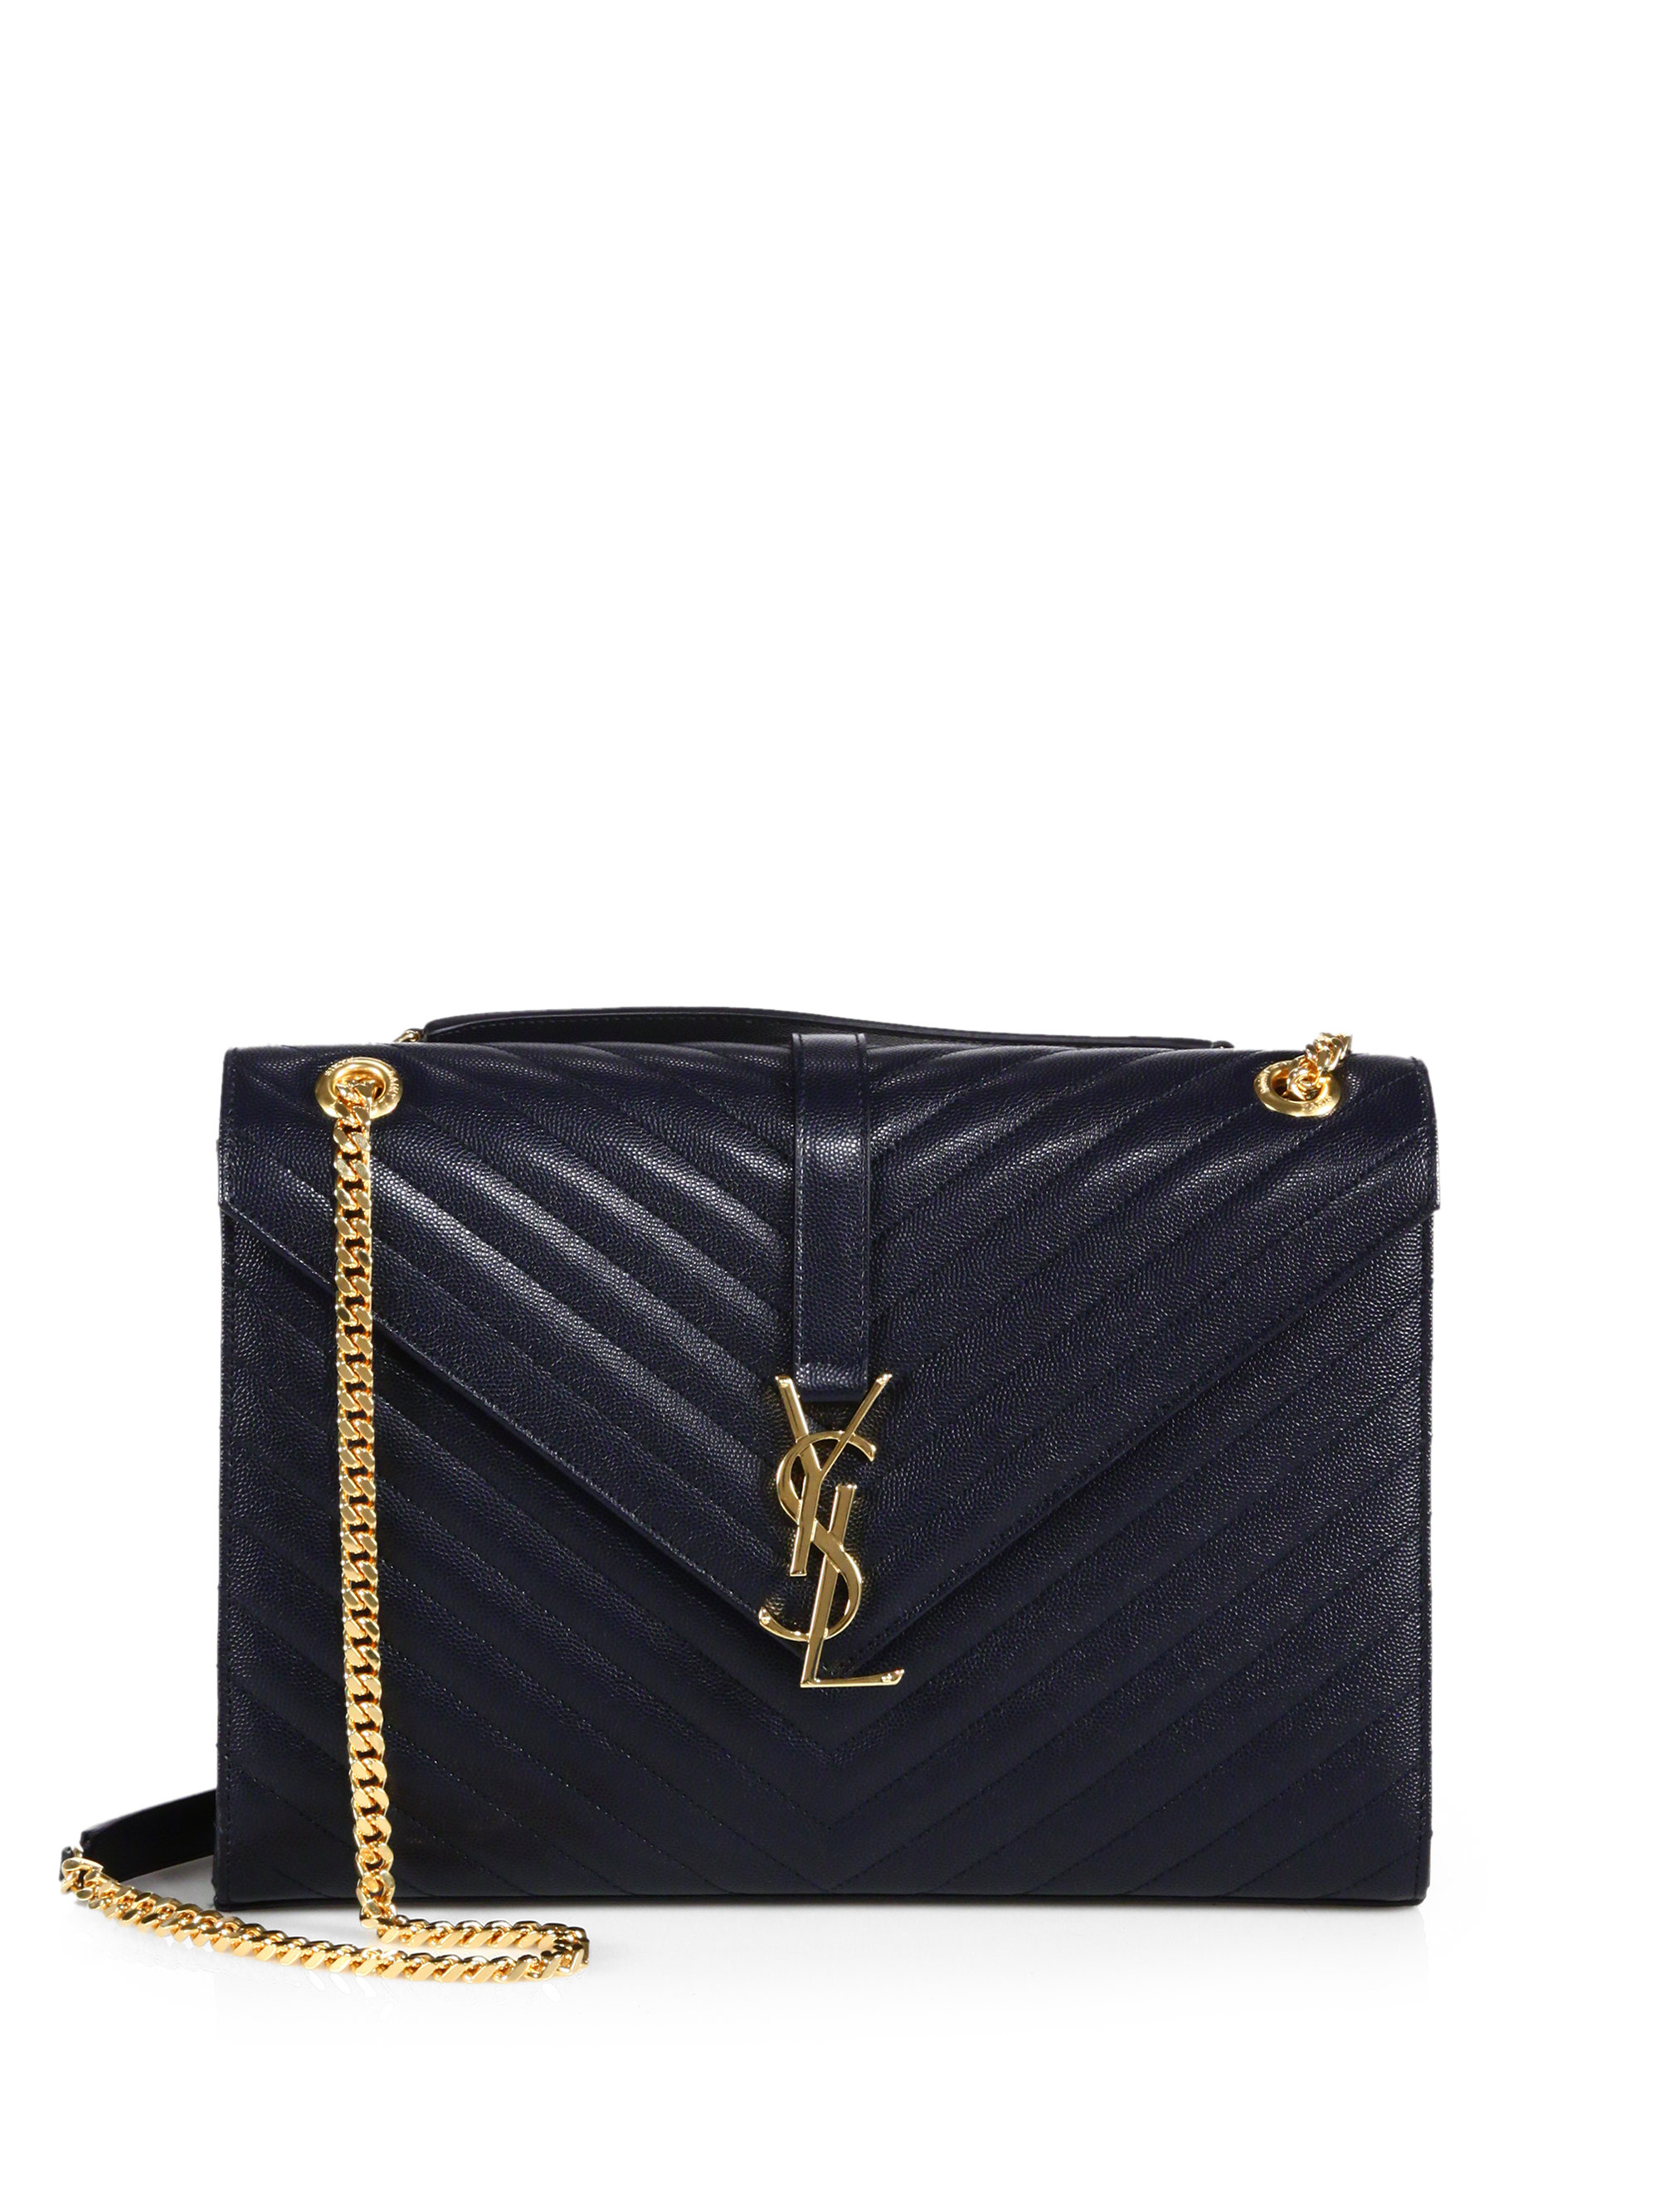 saint laurent large monogram matelasse leather chain shoulder bag in blue